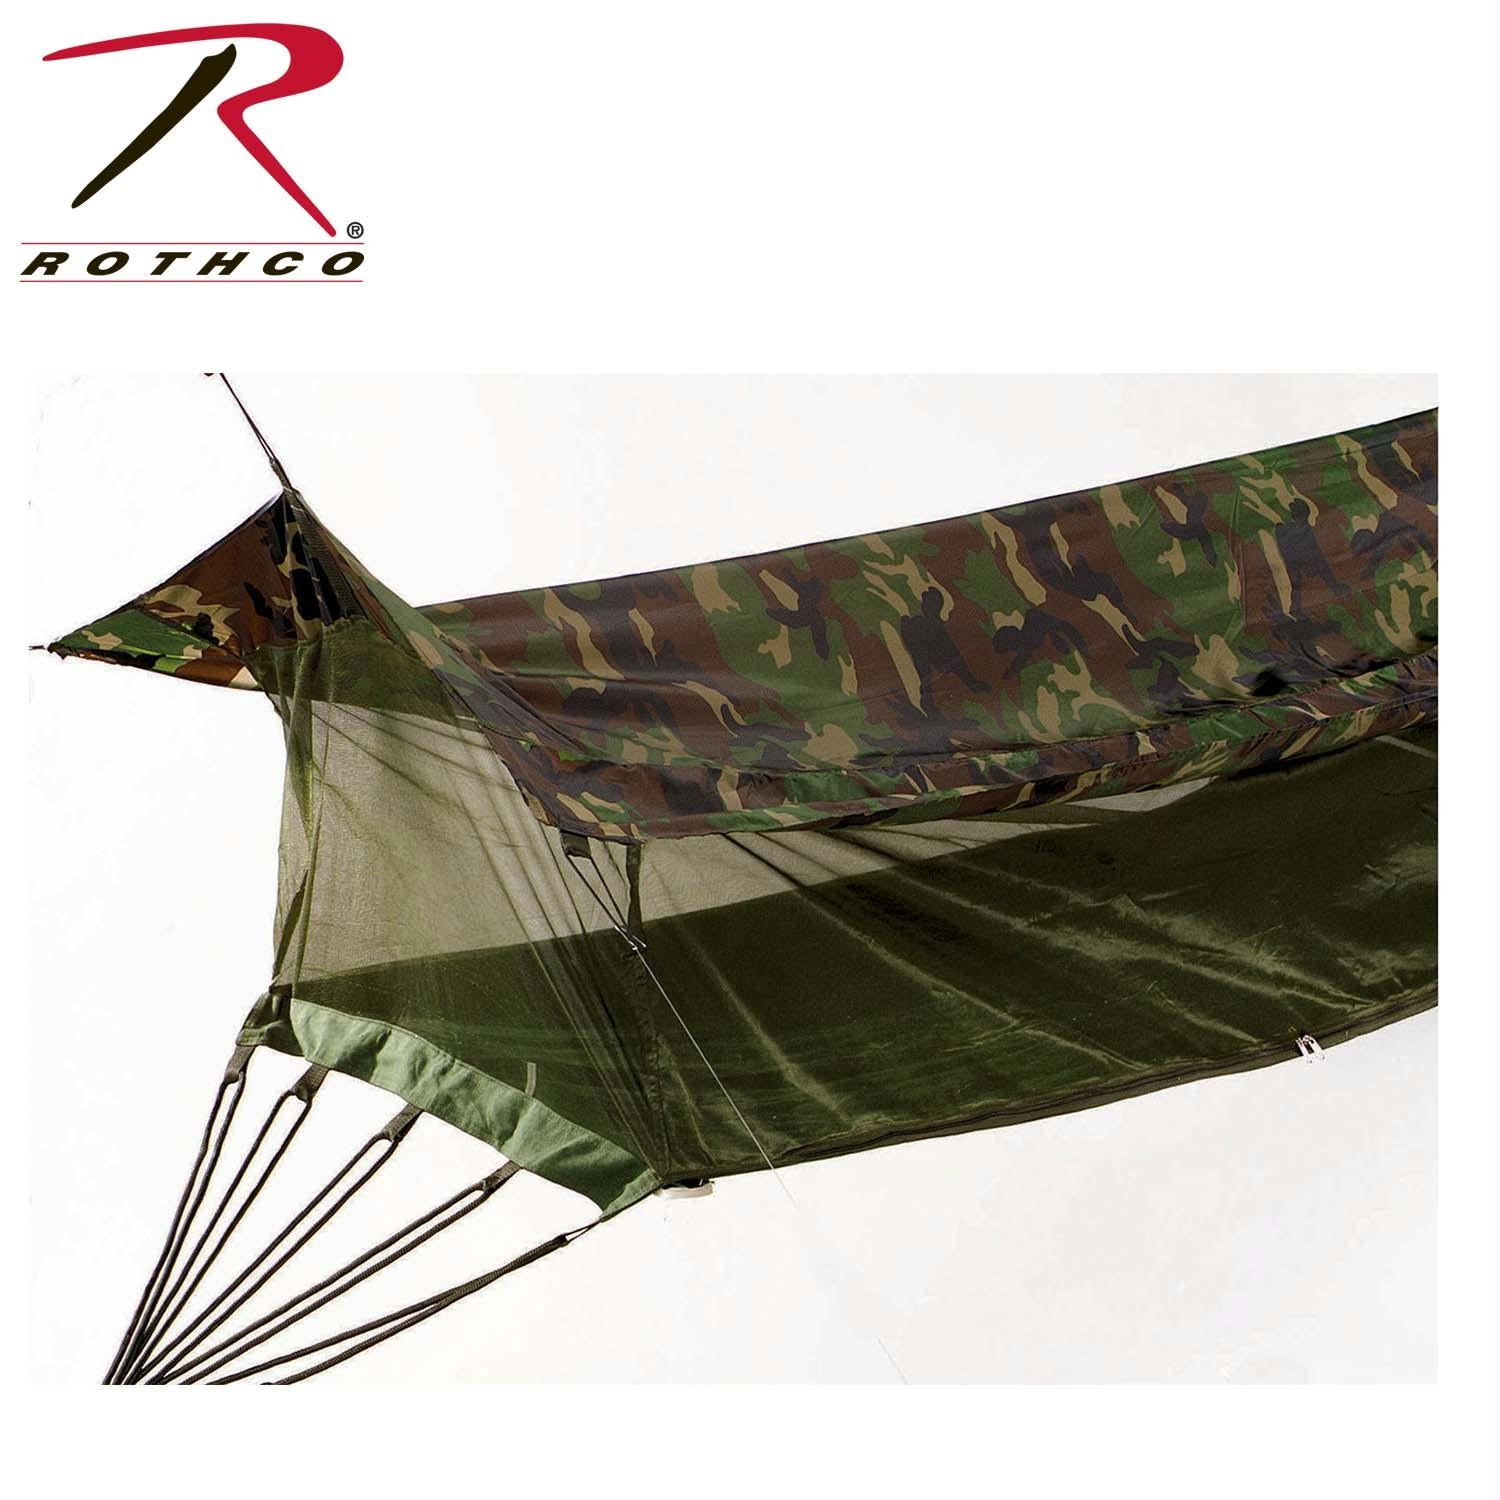 Rothco Jungle Hammock - Woodland Camo